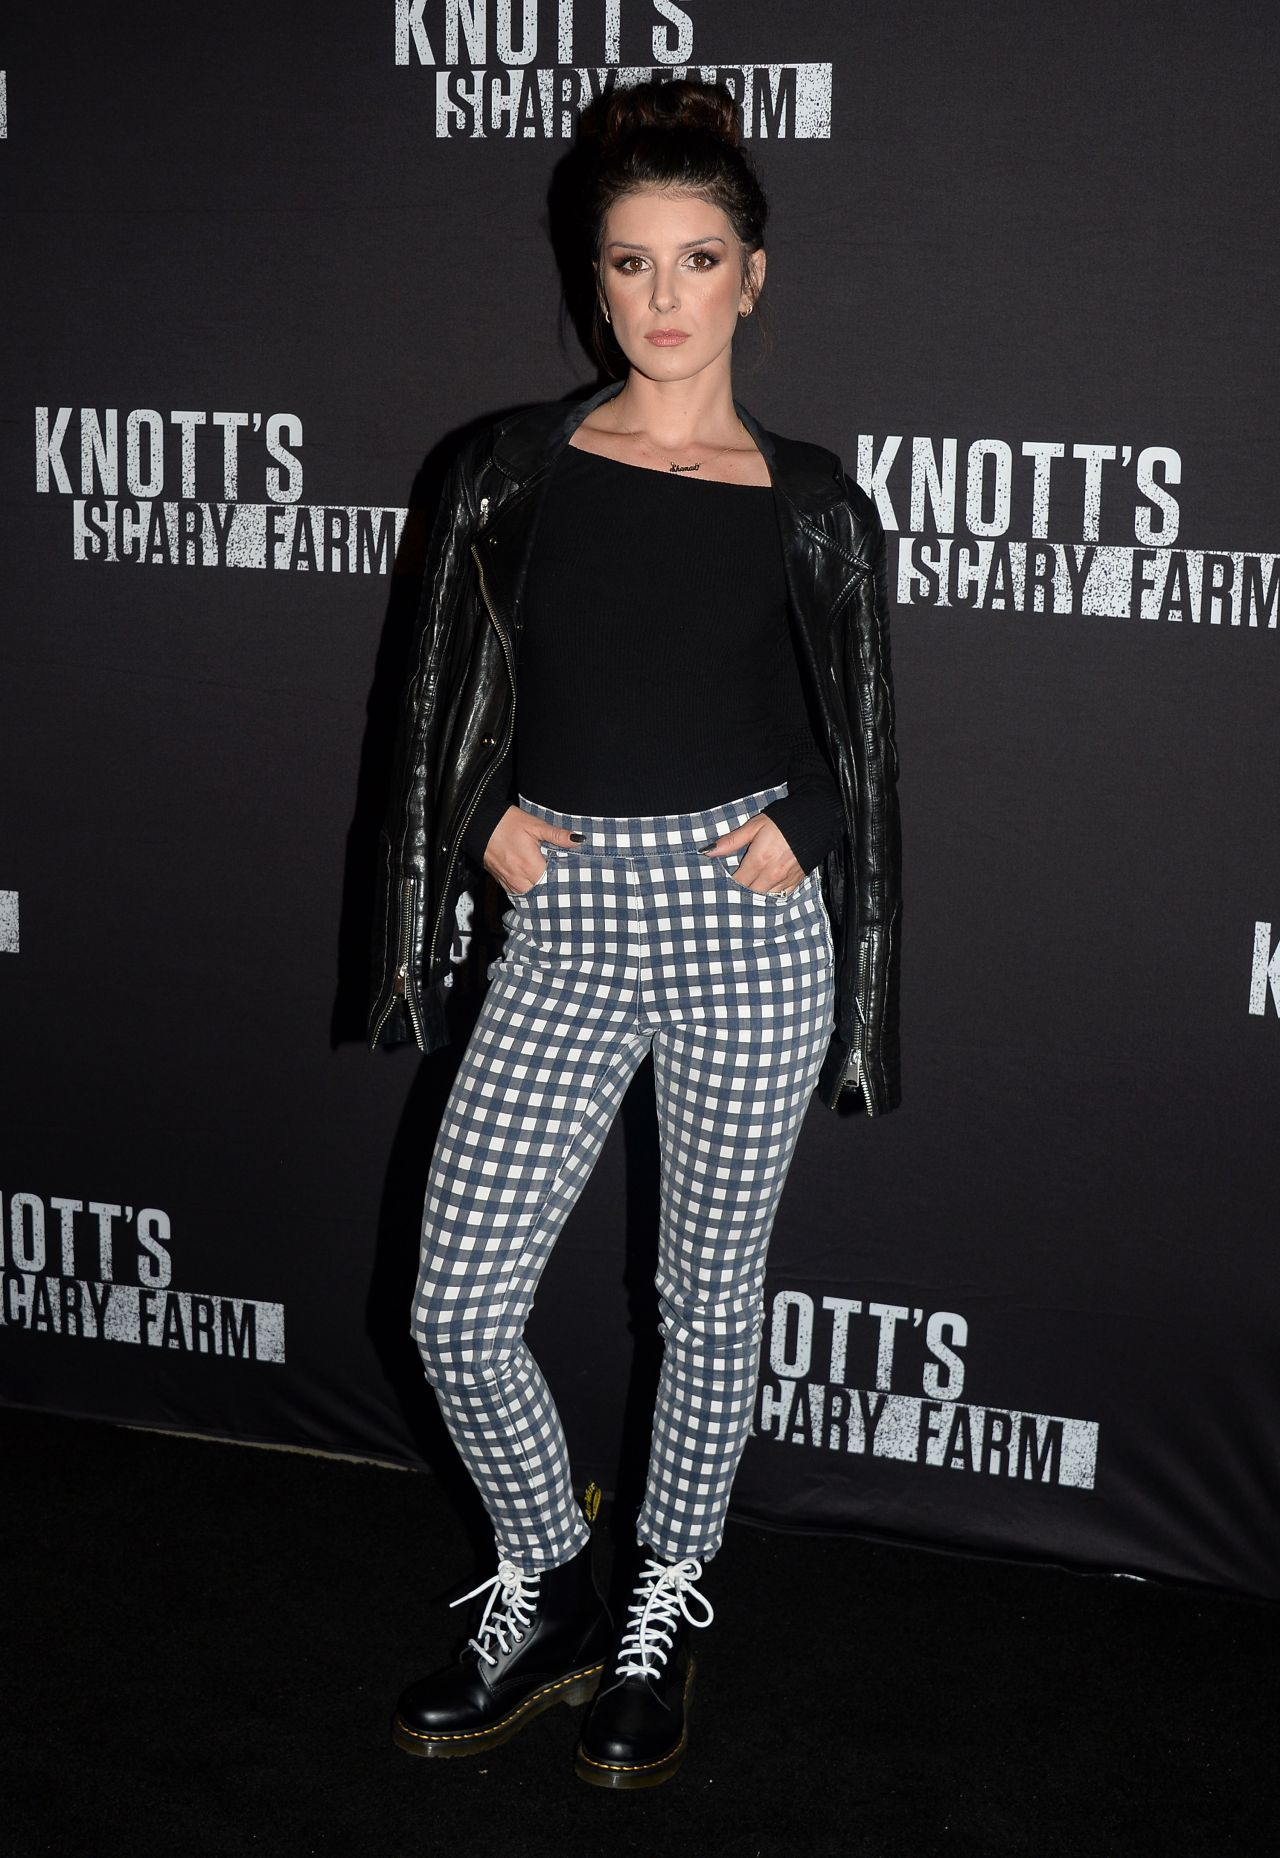 picture Shenae grimes knotts scary farm celebrity night in buena park